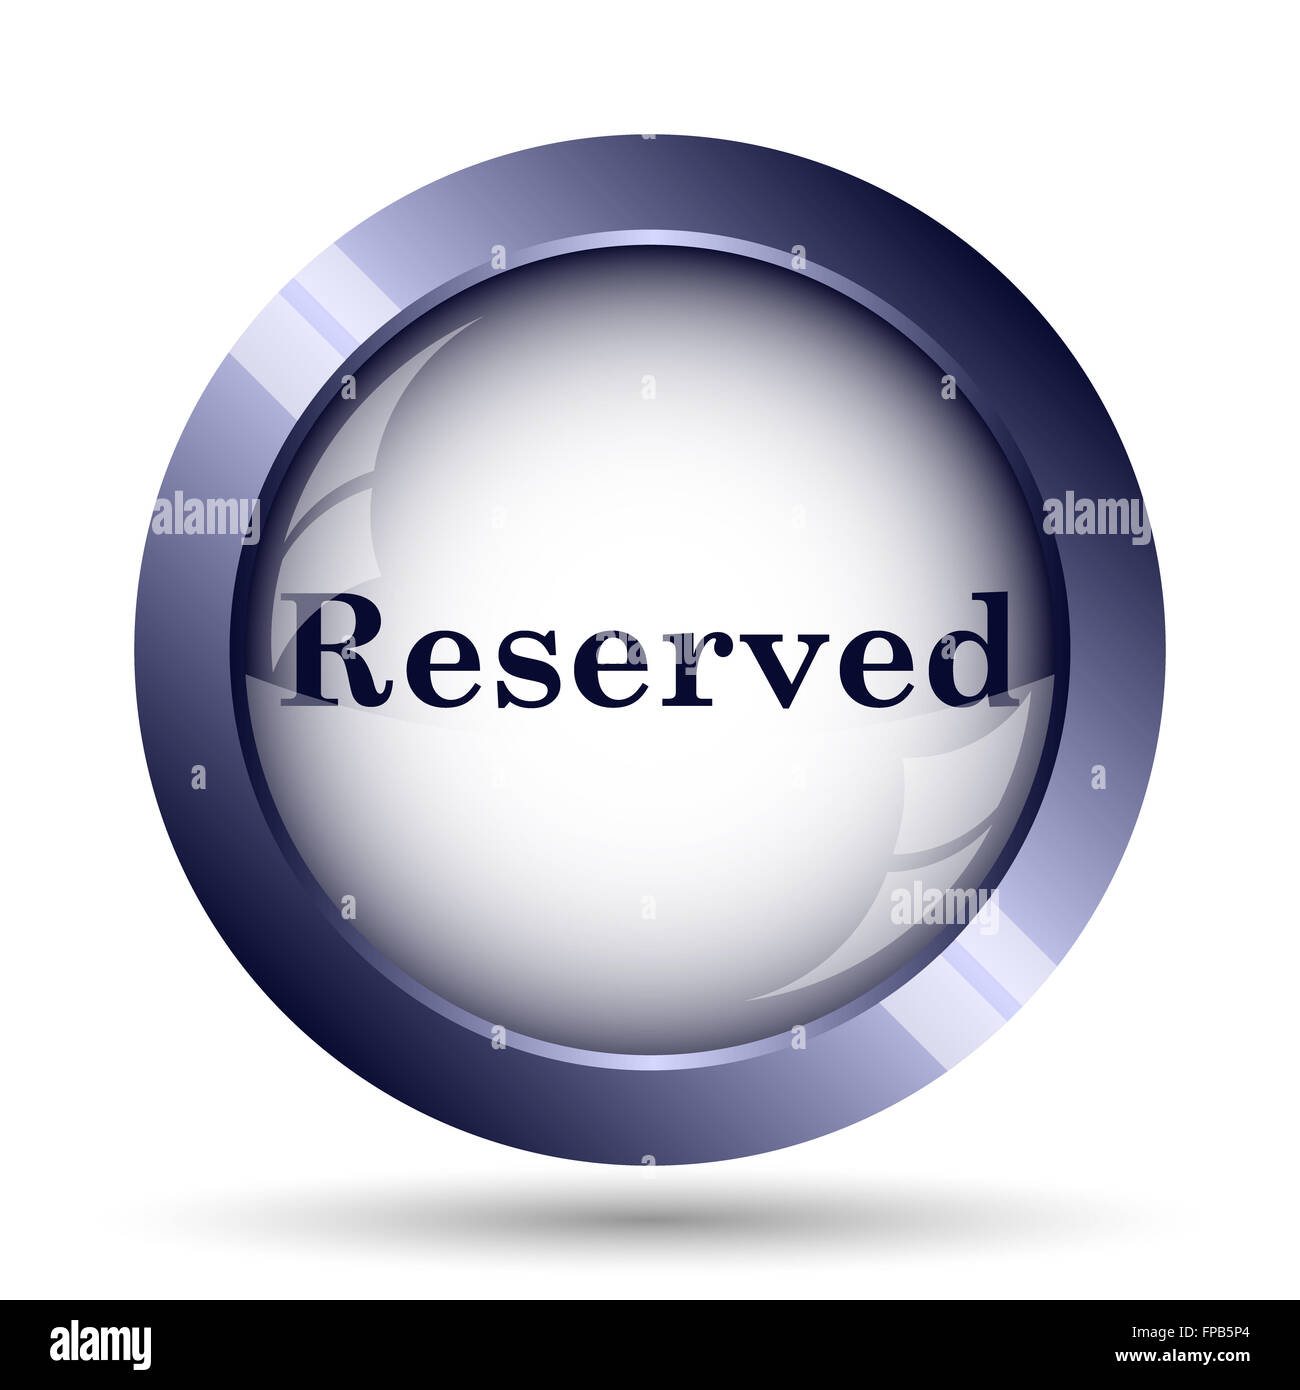 Reserved icon. Internet button on white background. - Stock Image